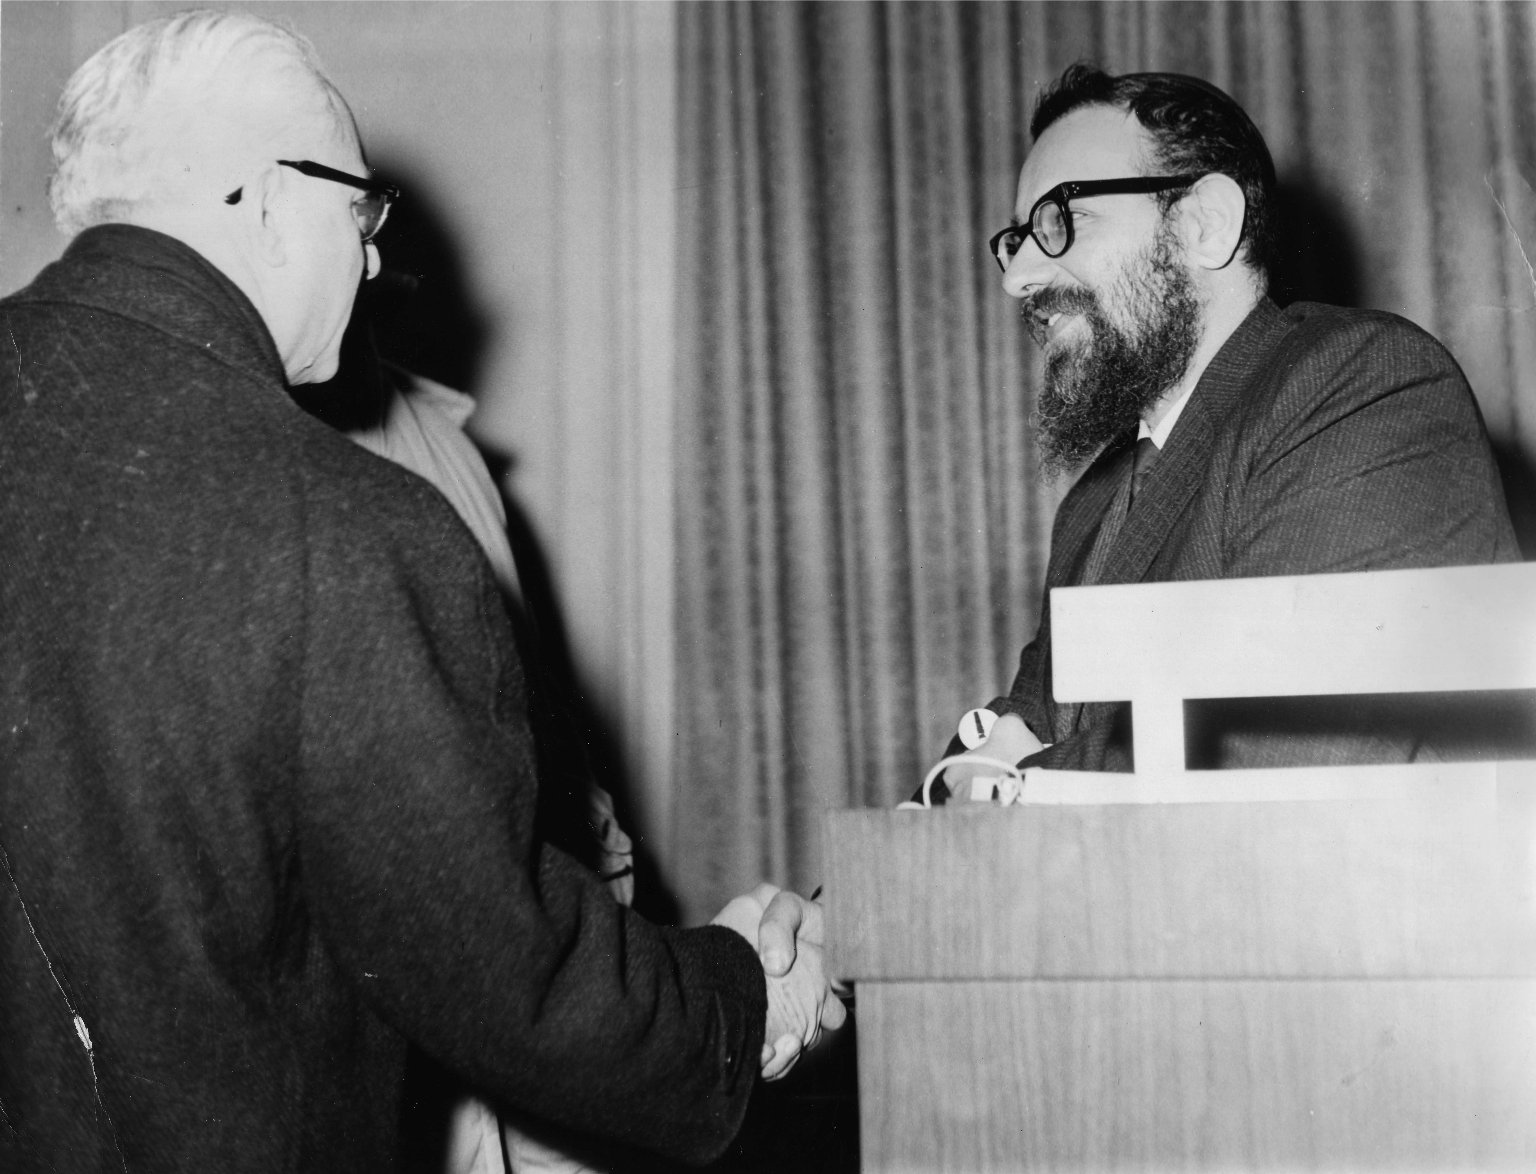 Rabbi Zalman Schachter shaking hands with someone after a Hillel Foundation talk in Pittsburg, Pennsylvania in 1962 or 63.